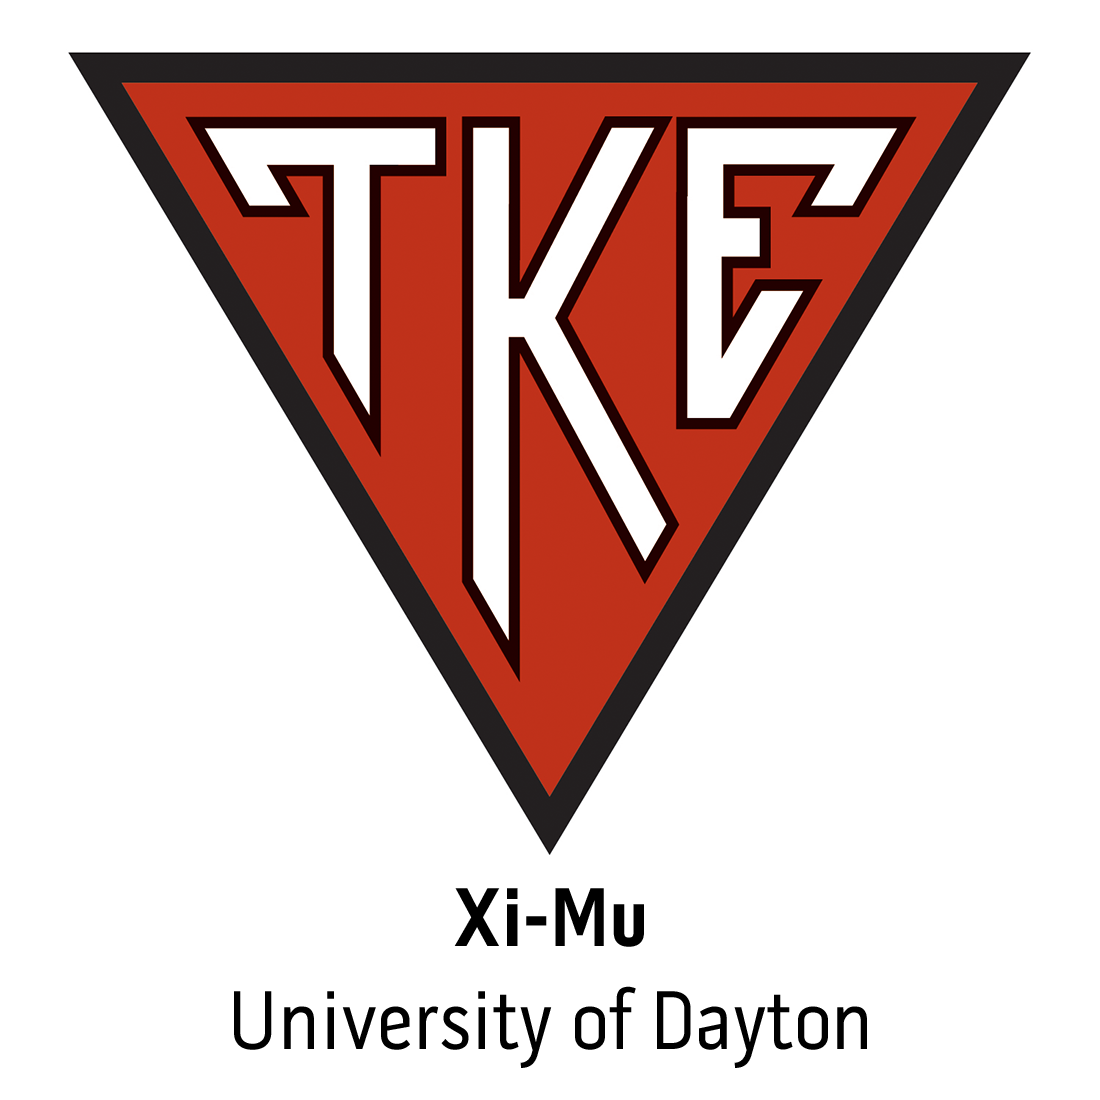 Xi-Mu Chapter at University of Dayton